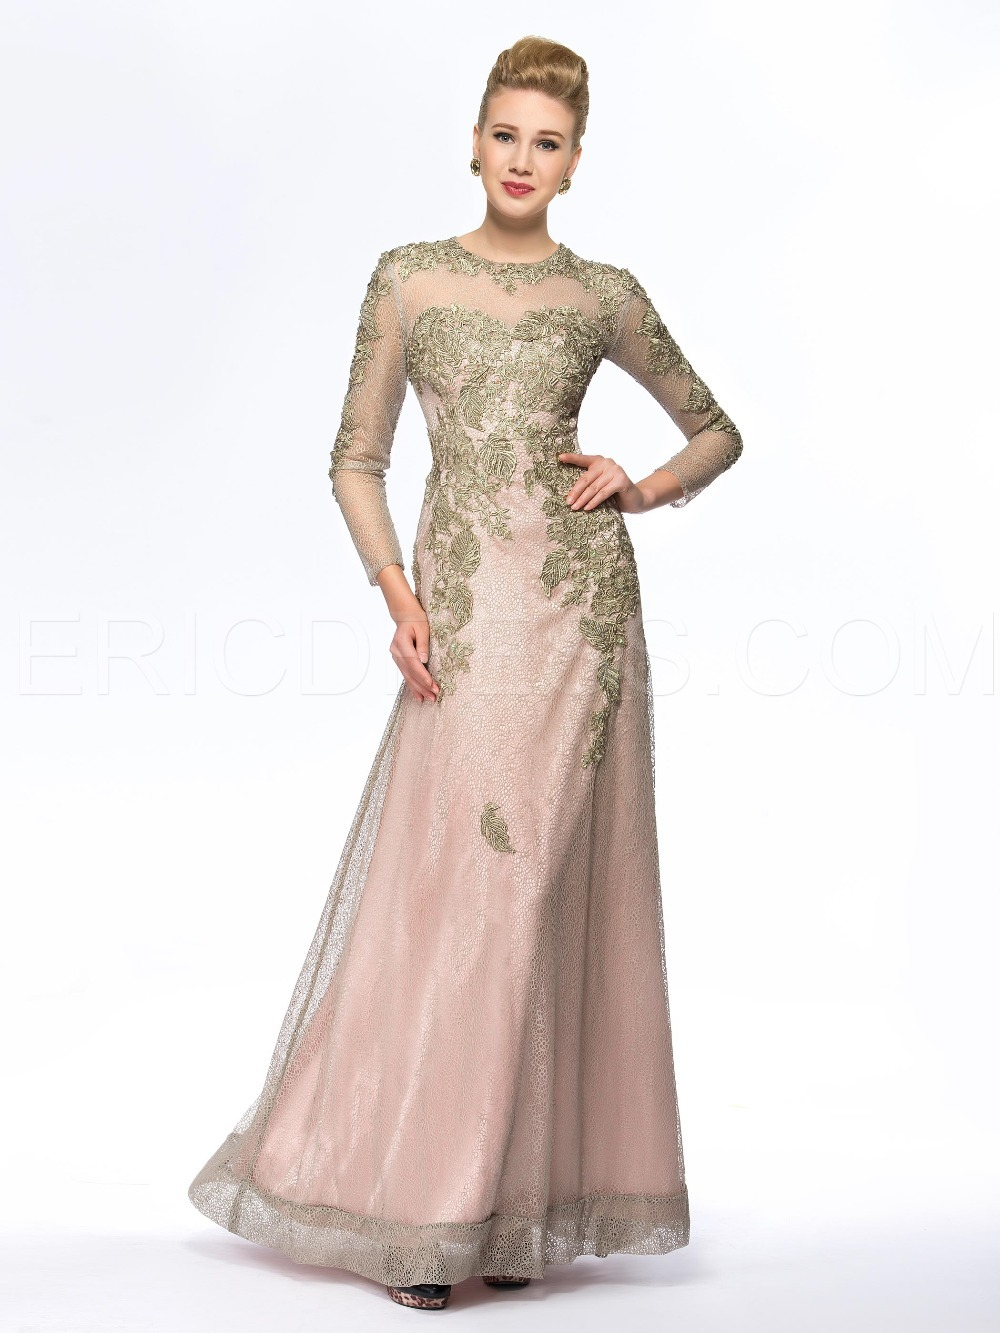 Sheath Floor Length Gold Mother of the Bride Dresses Pant Suits Plus Size  Groom Long Sleeve Brides Mother Dresses for Weddings 991d8d257683